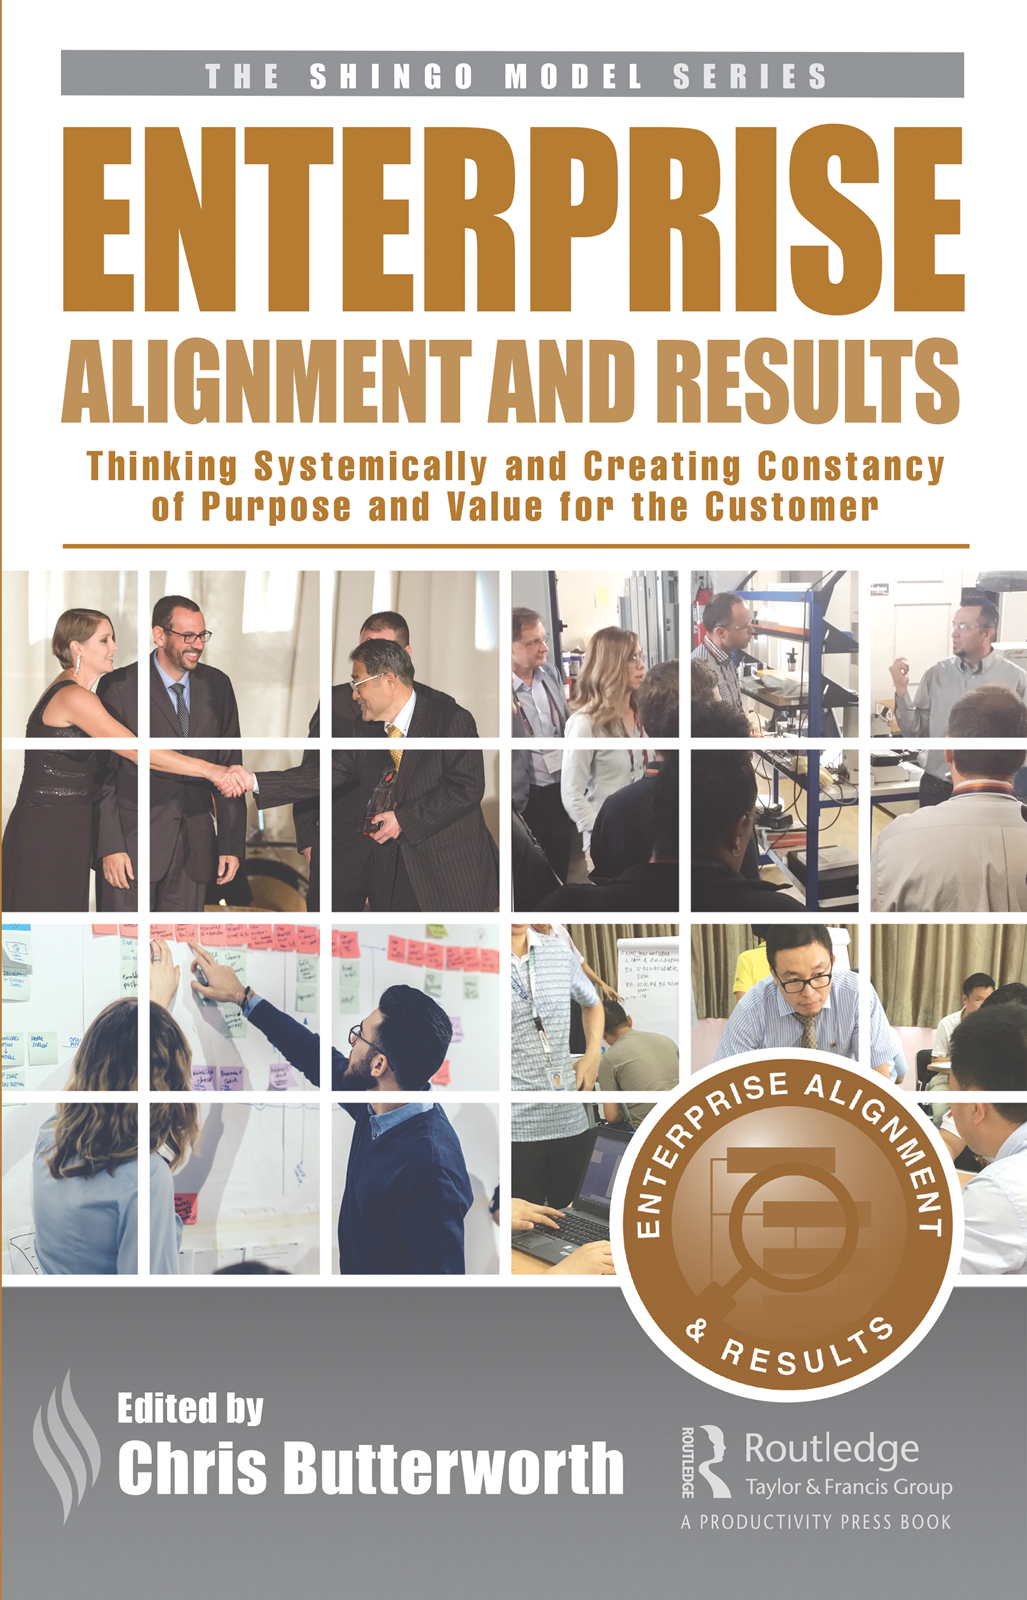 Enterprise Alignment and Results: Thinking Systemically and Creating Constancy of Purpose and Value for the Customer book cover